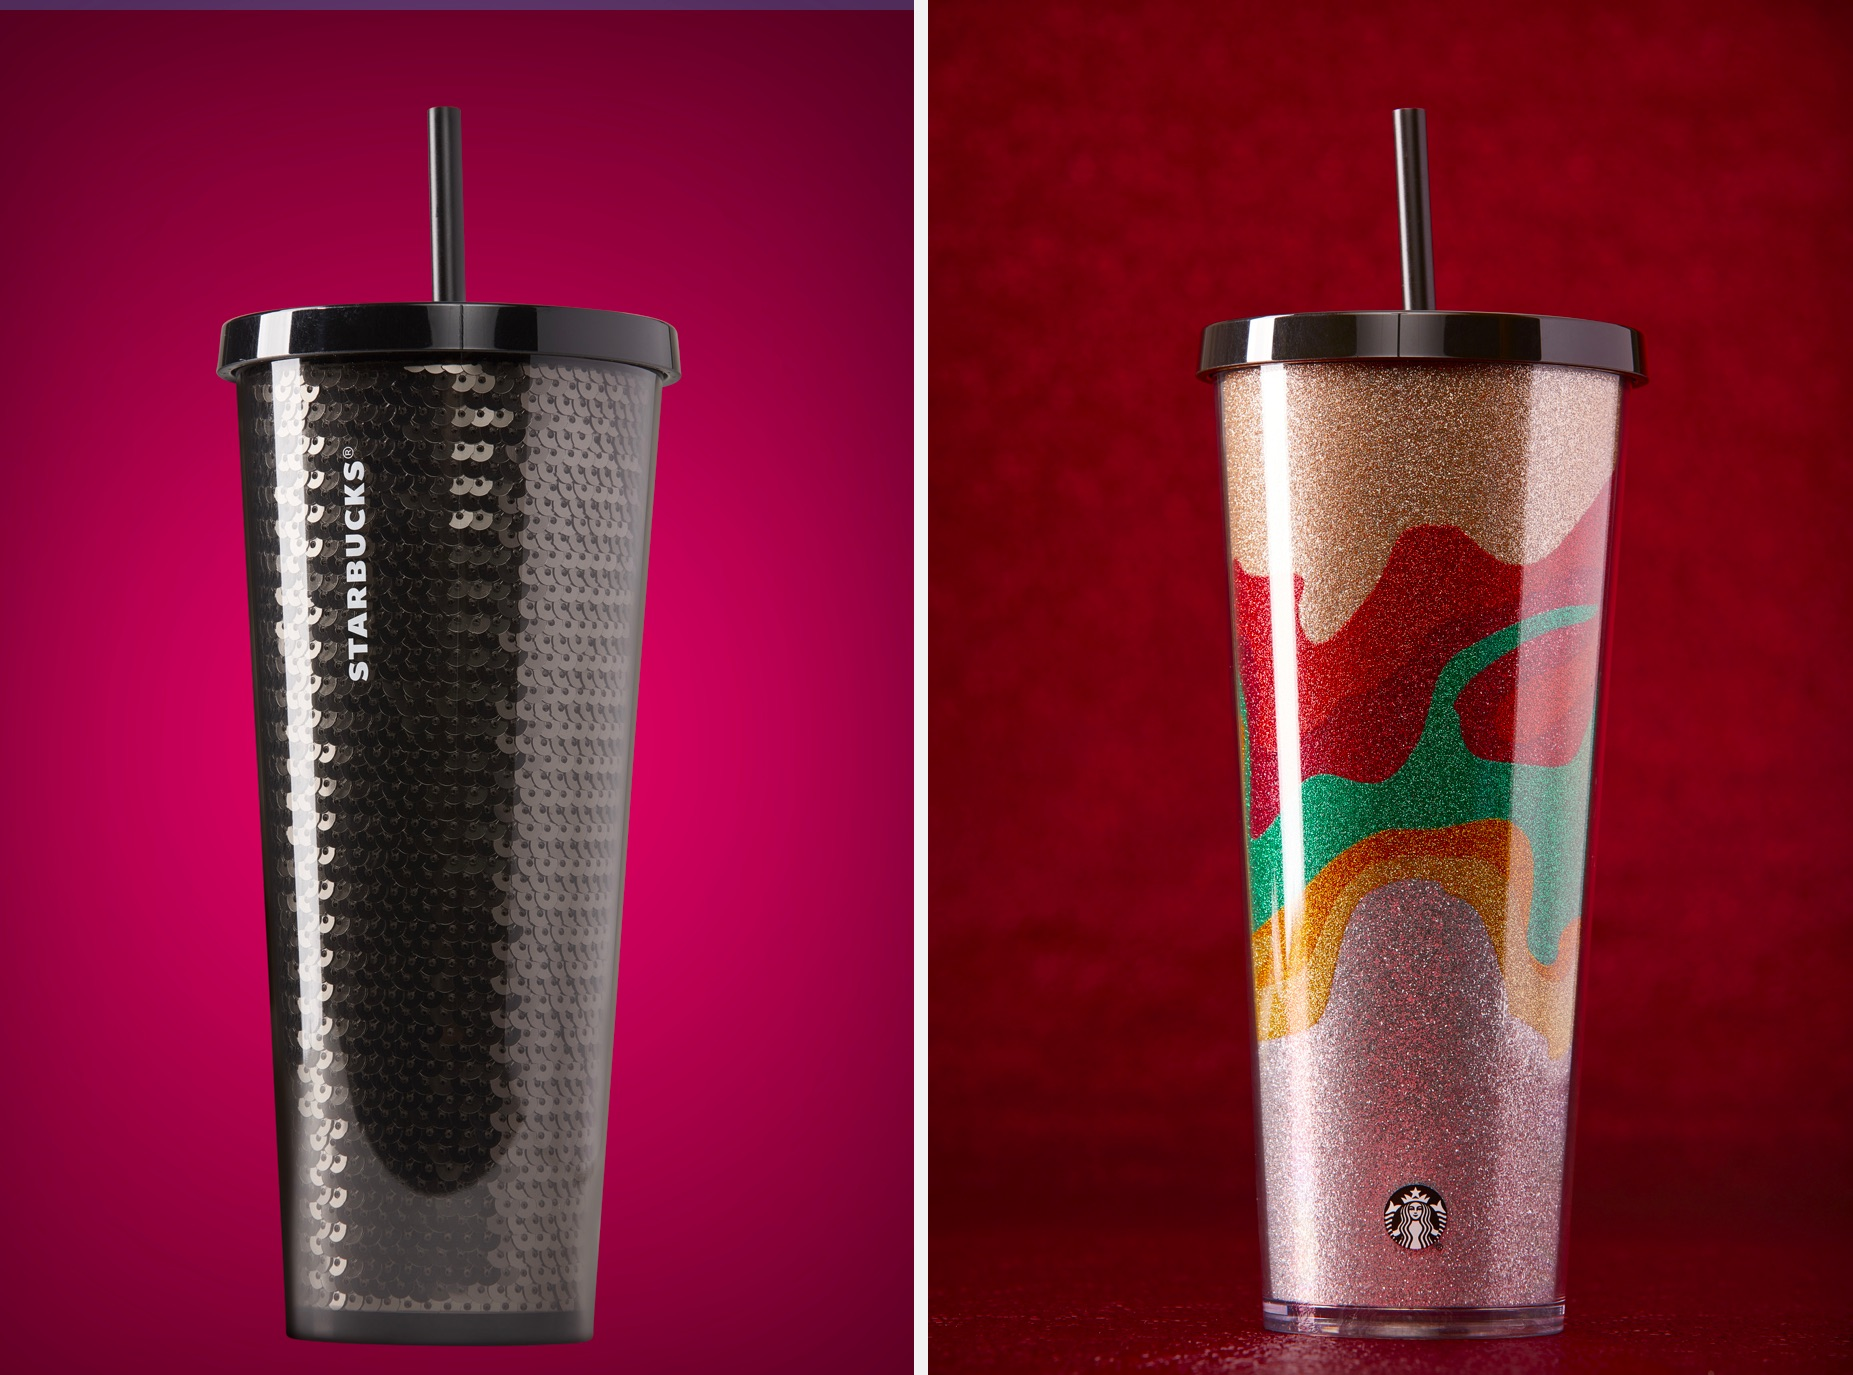 Starbucks New Reusable Holiday Cups Don't Exactly Scream 'Holiday'